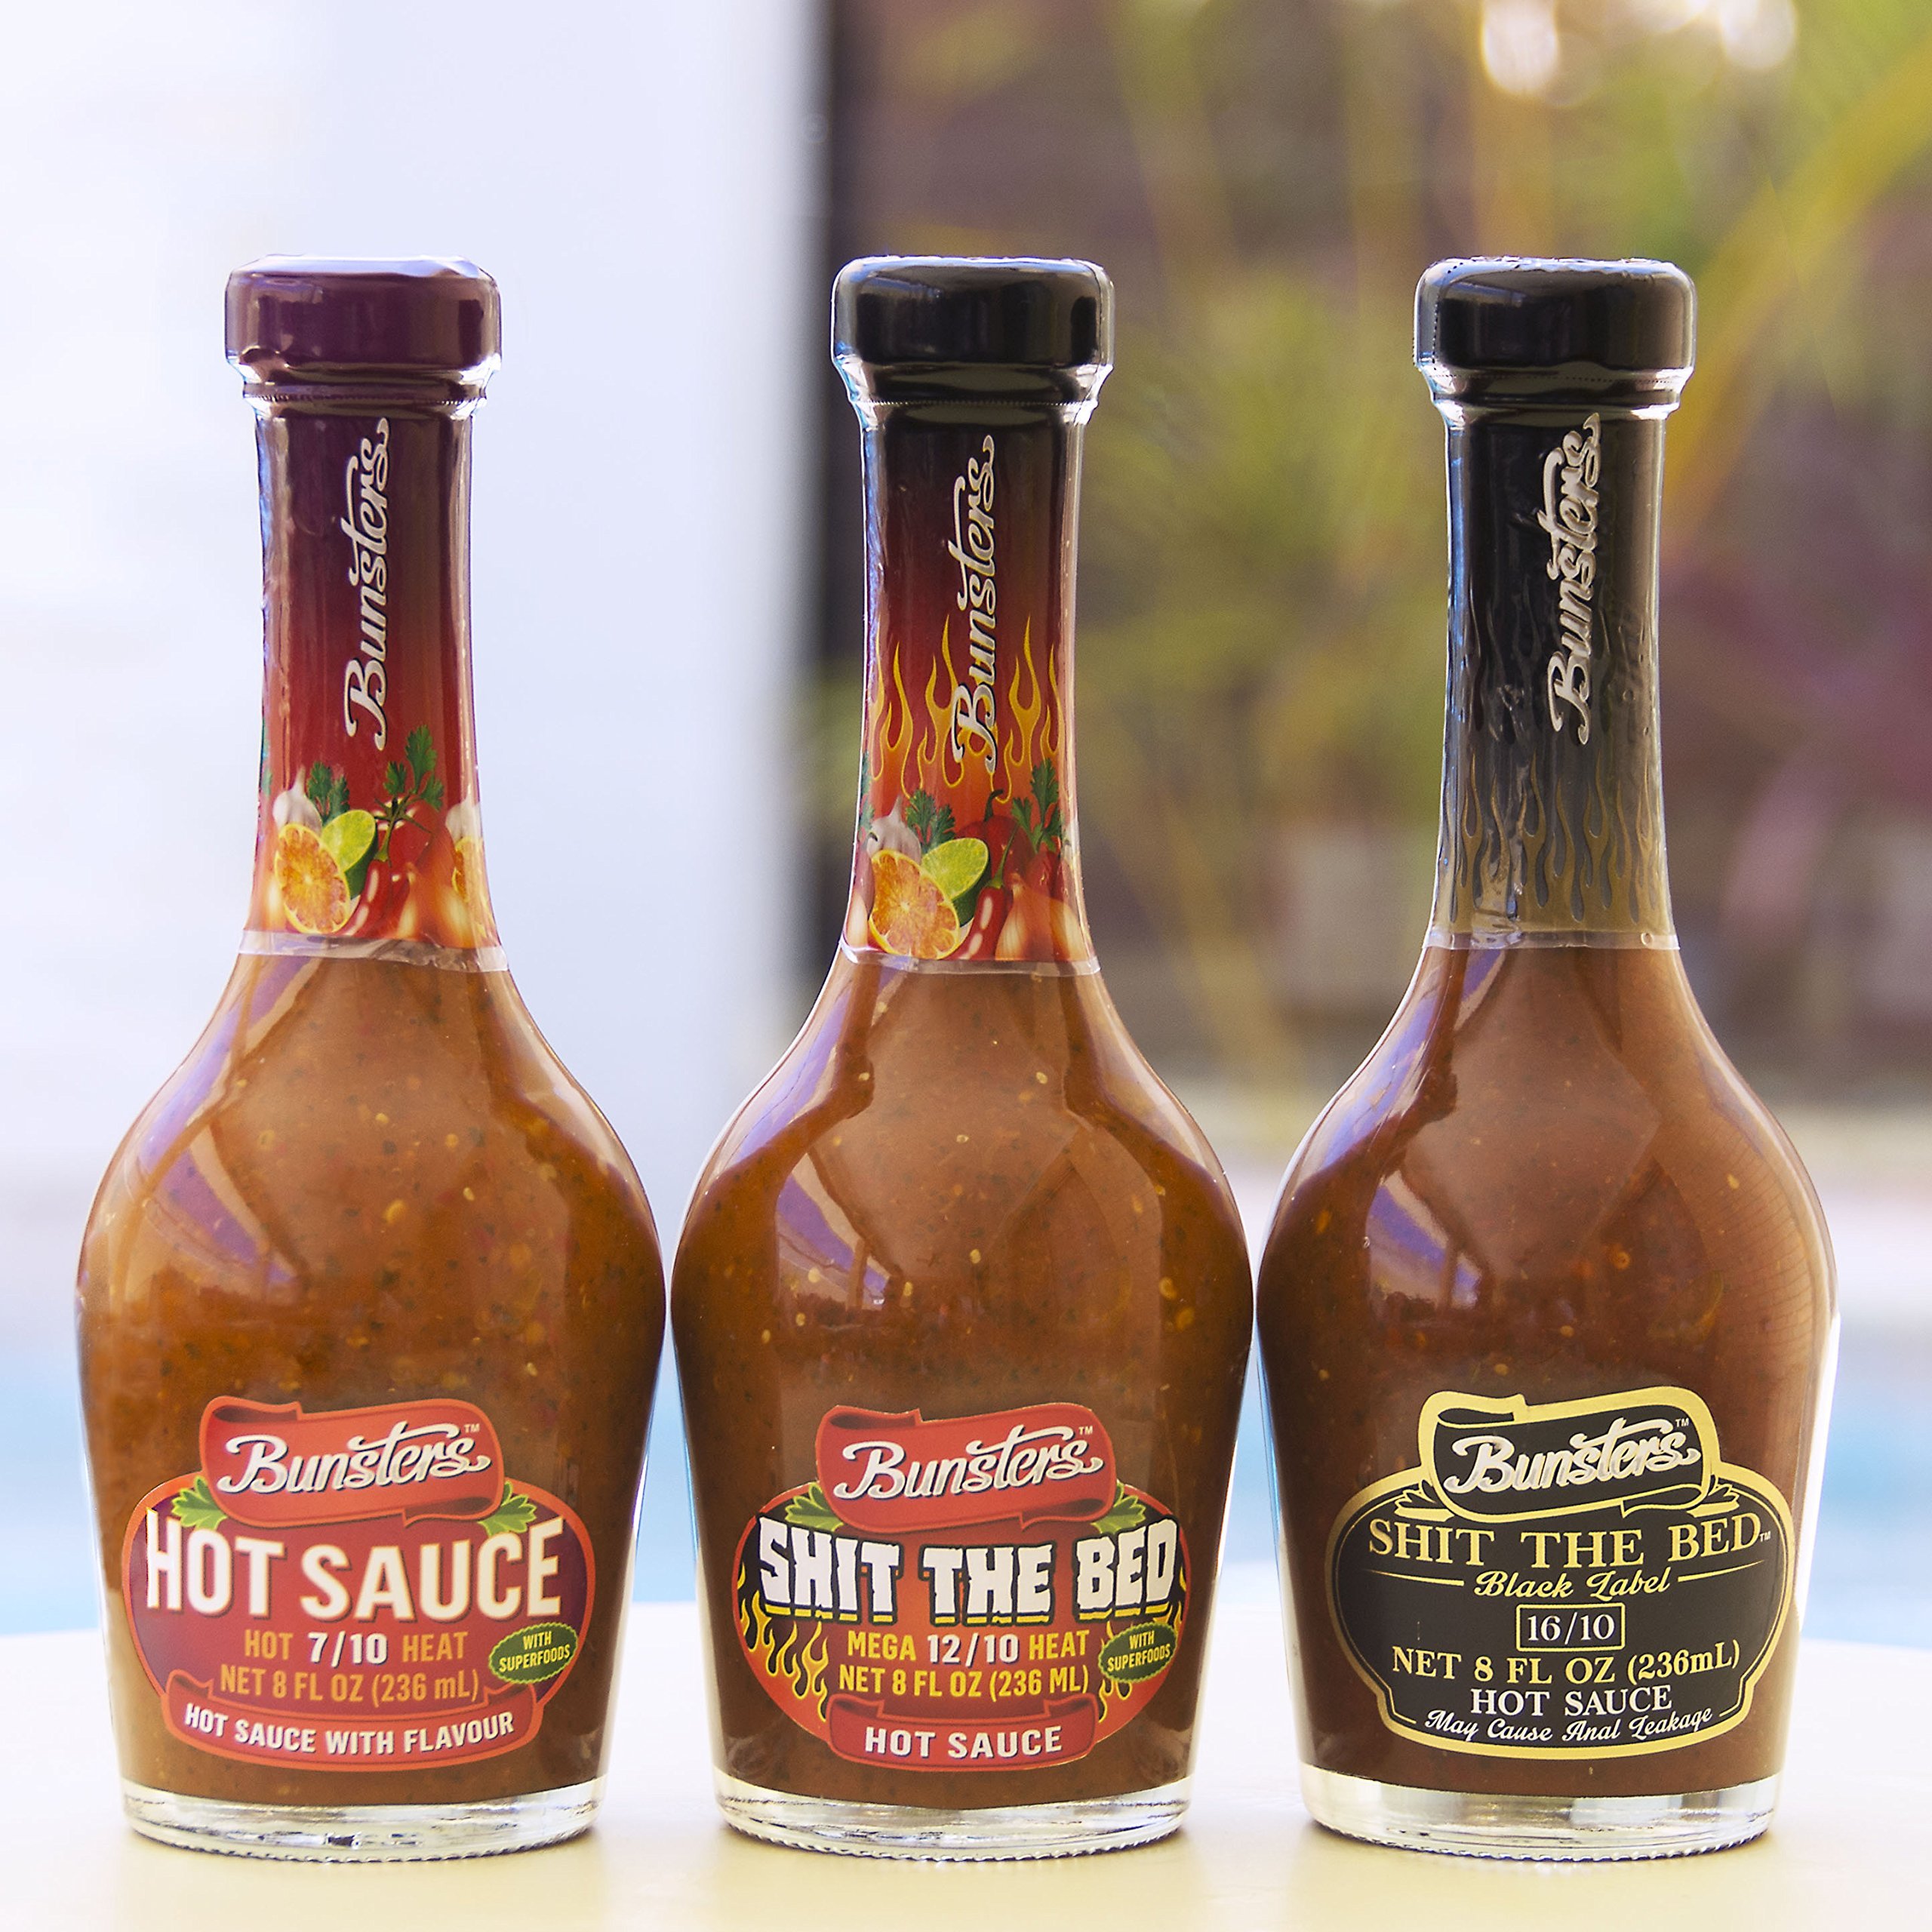 Bunsters Hot Chili Pepper Sauce - 3 Pack Set - Including Shit the Bed Hot Sauce, 8 fl oz by Bunsters (Image #3)